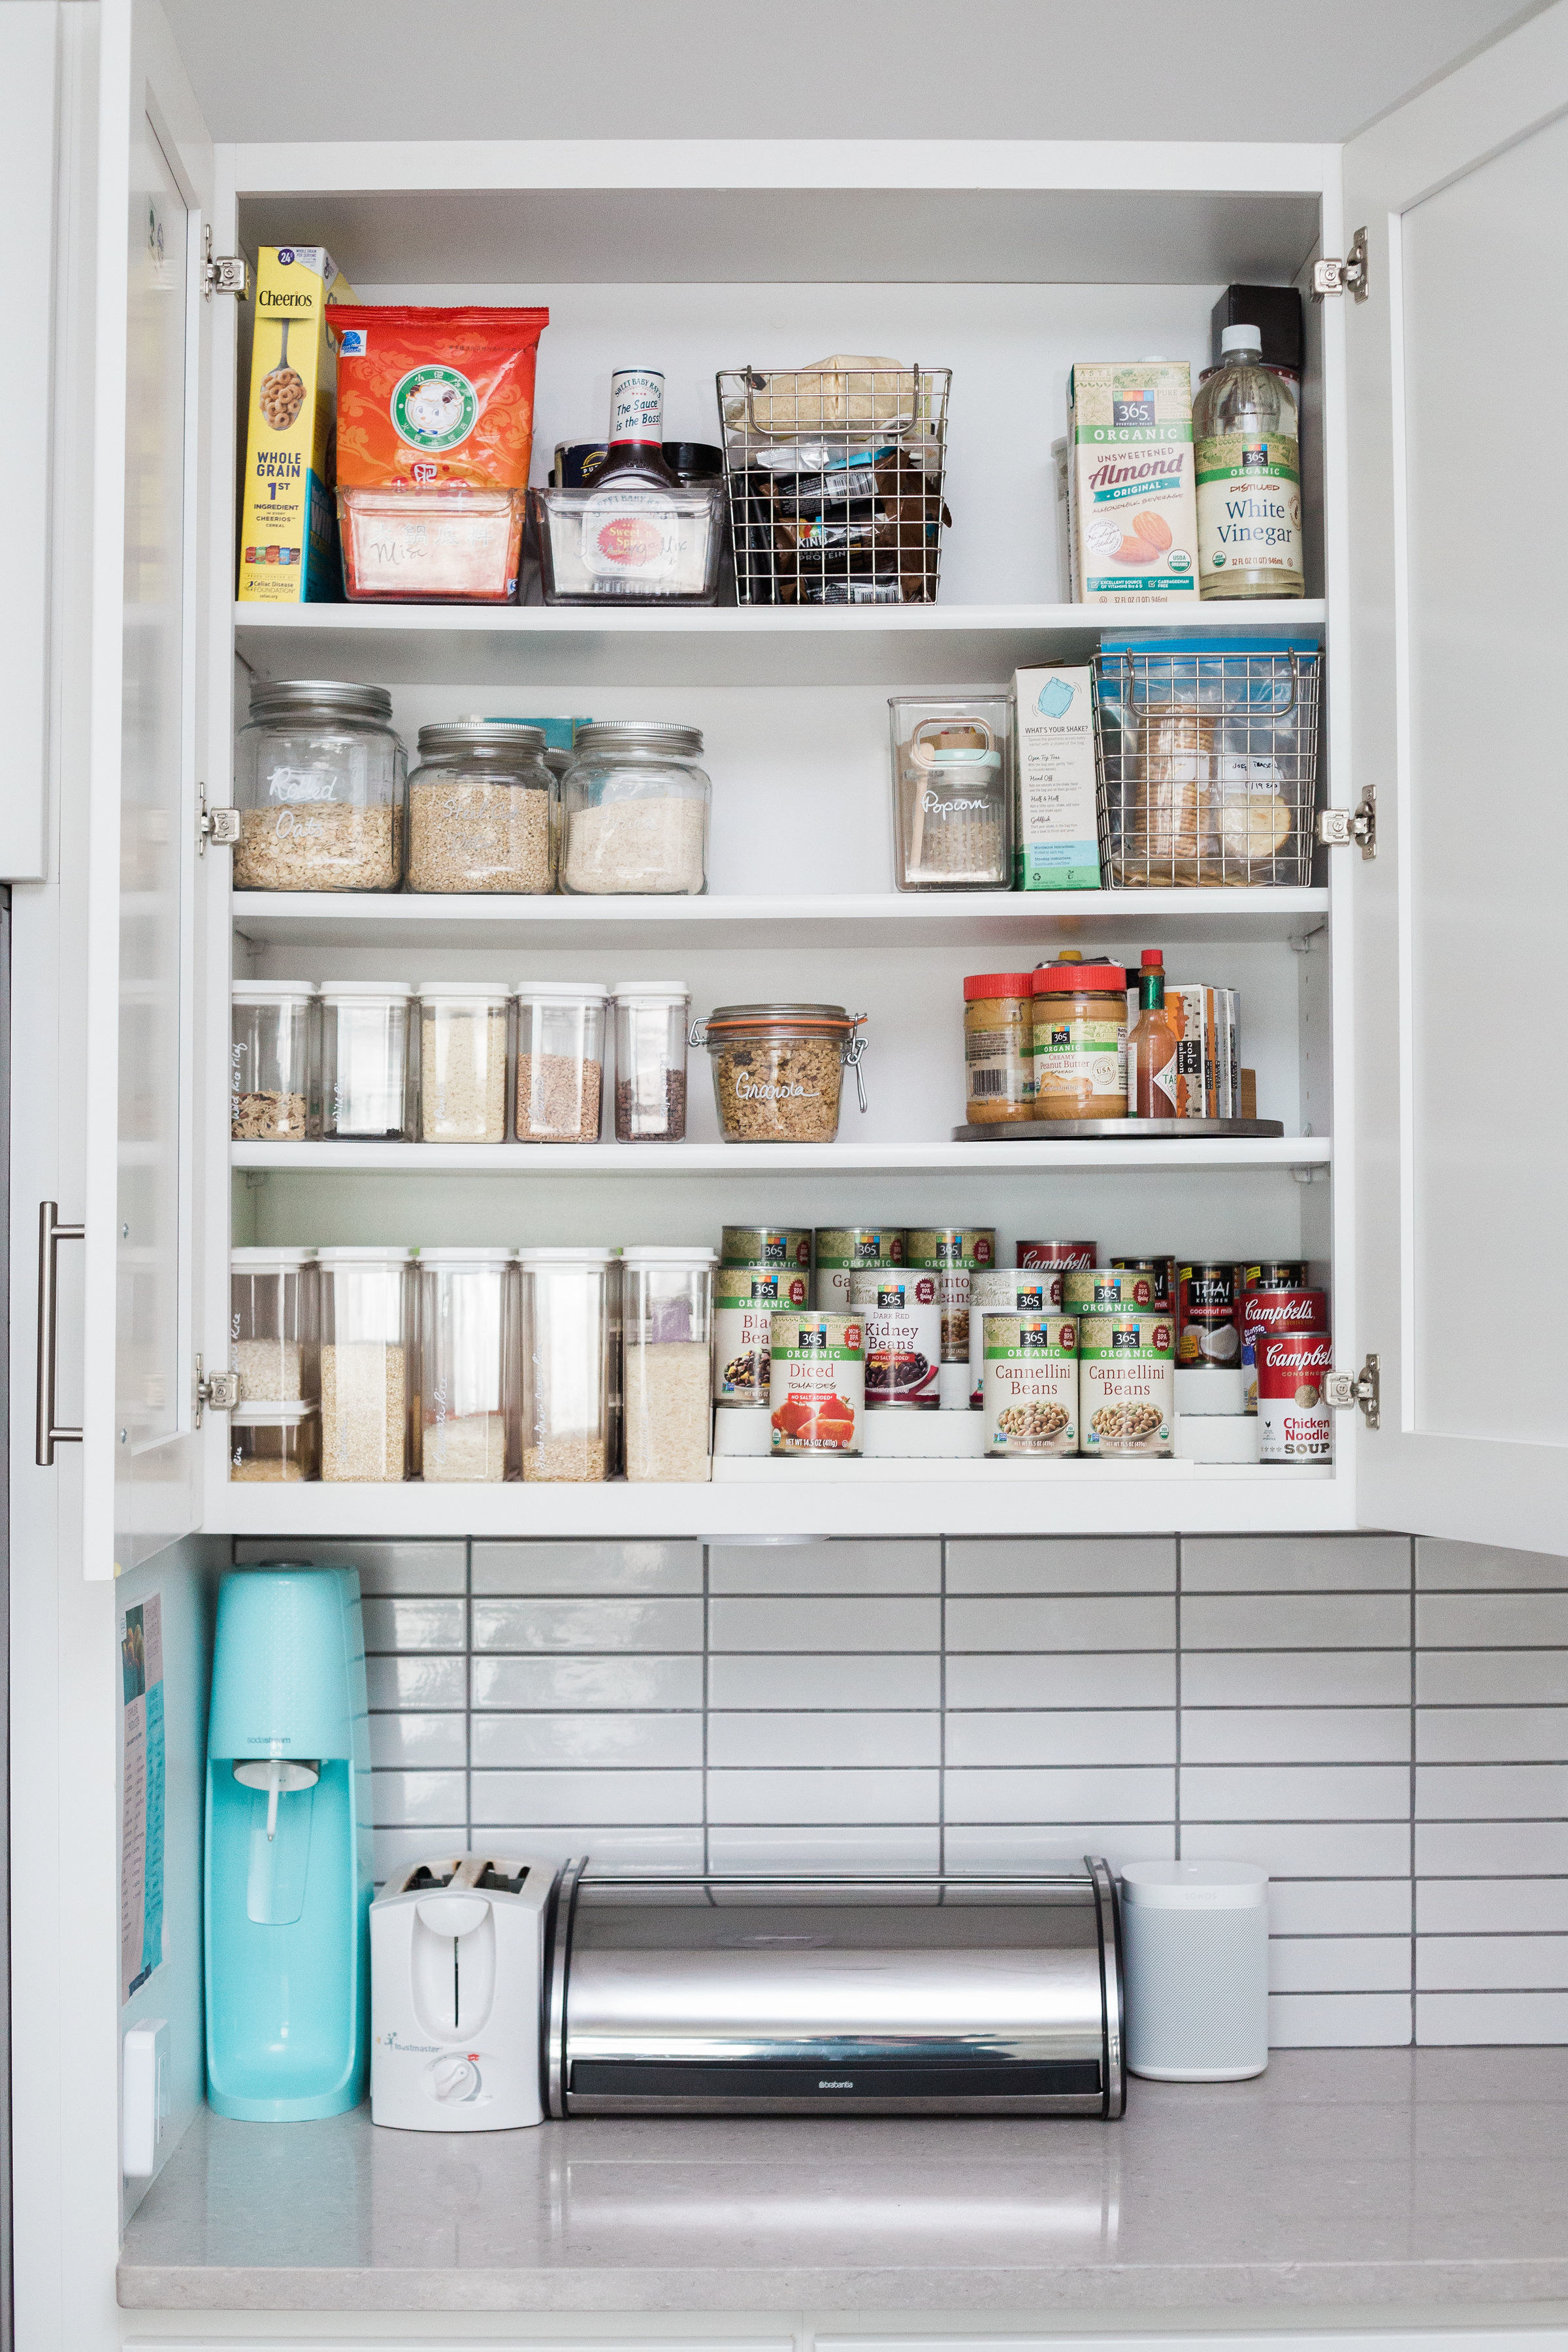 An open cabinet displaying plastic containers and jars filled with staples, a collection of cans on a step shelf, and condiments on a turntable above a Soda Stream, a toaster, a bread saver, and a speaker